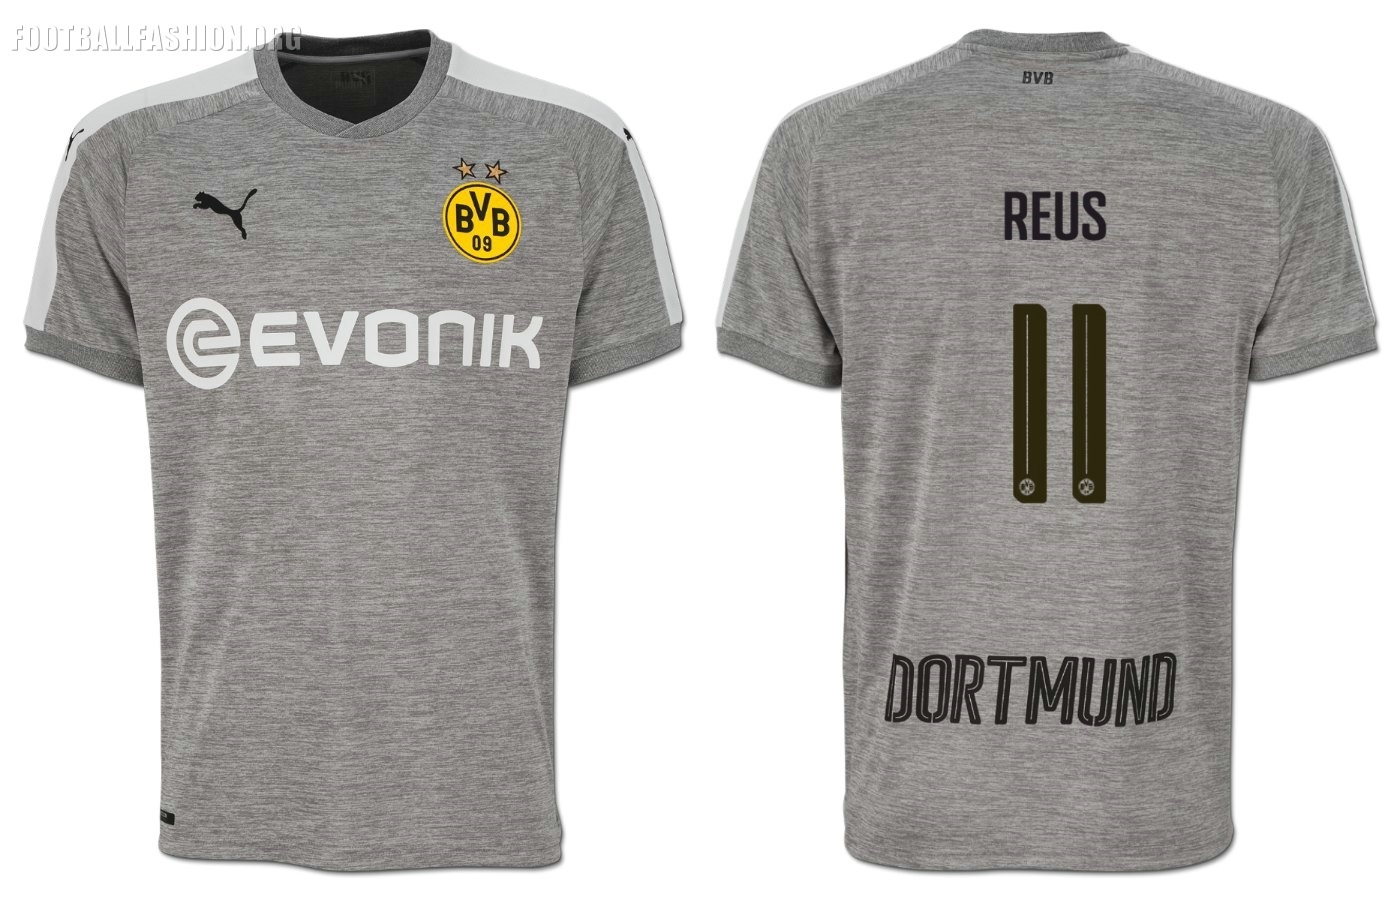 wholesale dealer 46cc7 6a744 Borussia Dortmund 2017/18 PUMA Third Kit - FOOTBALL FASHION.ORG